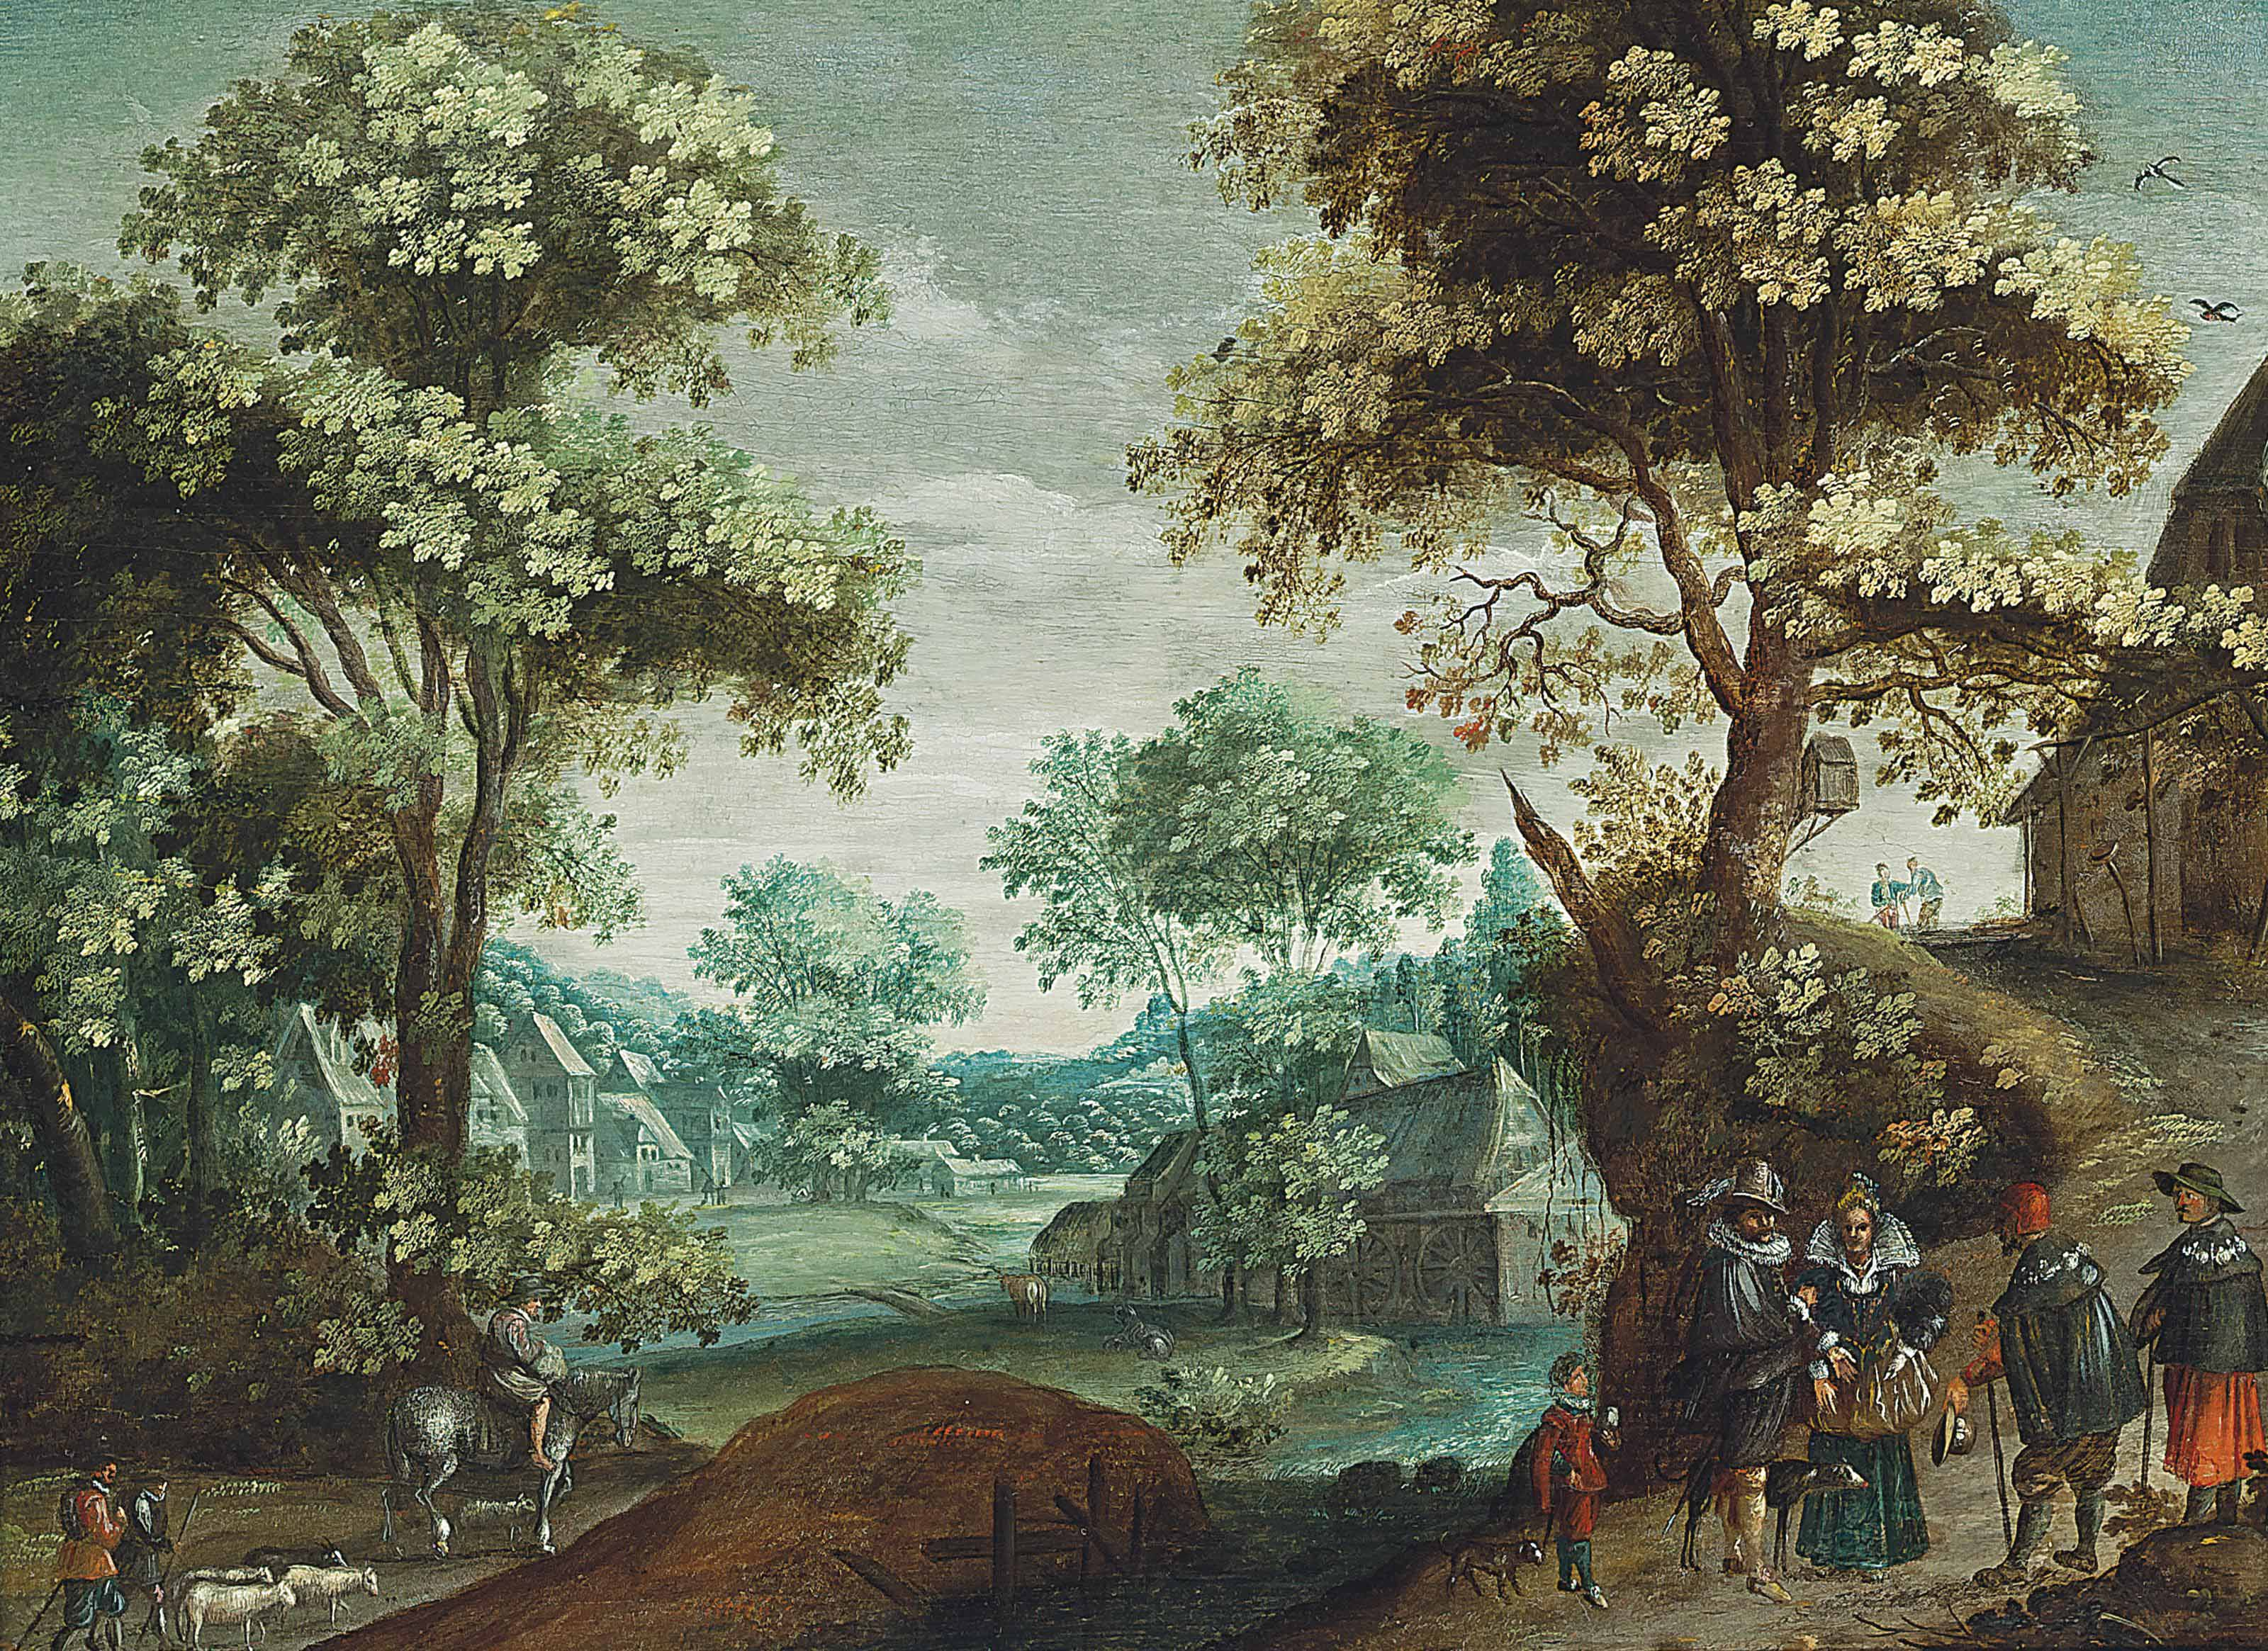 A wooded river landscape with an elegant company and other travellers on a path, a town beyond